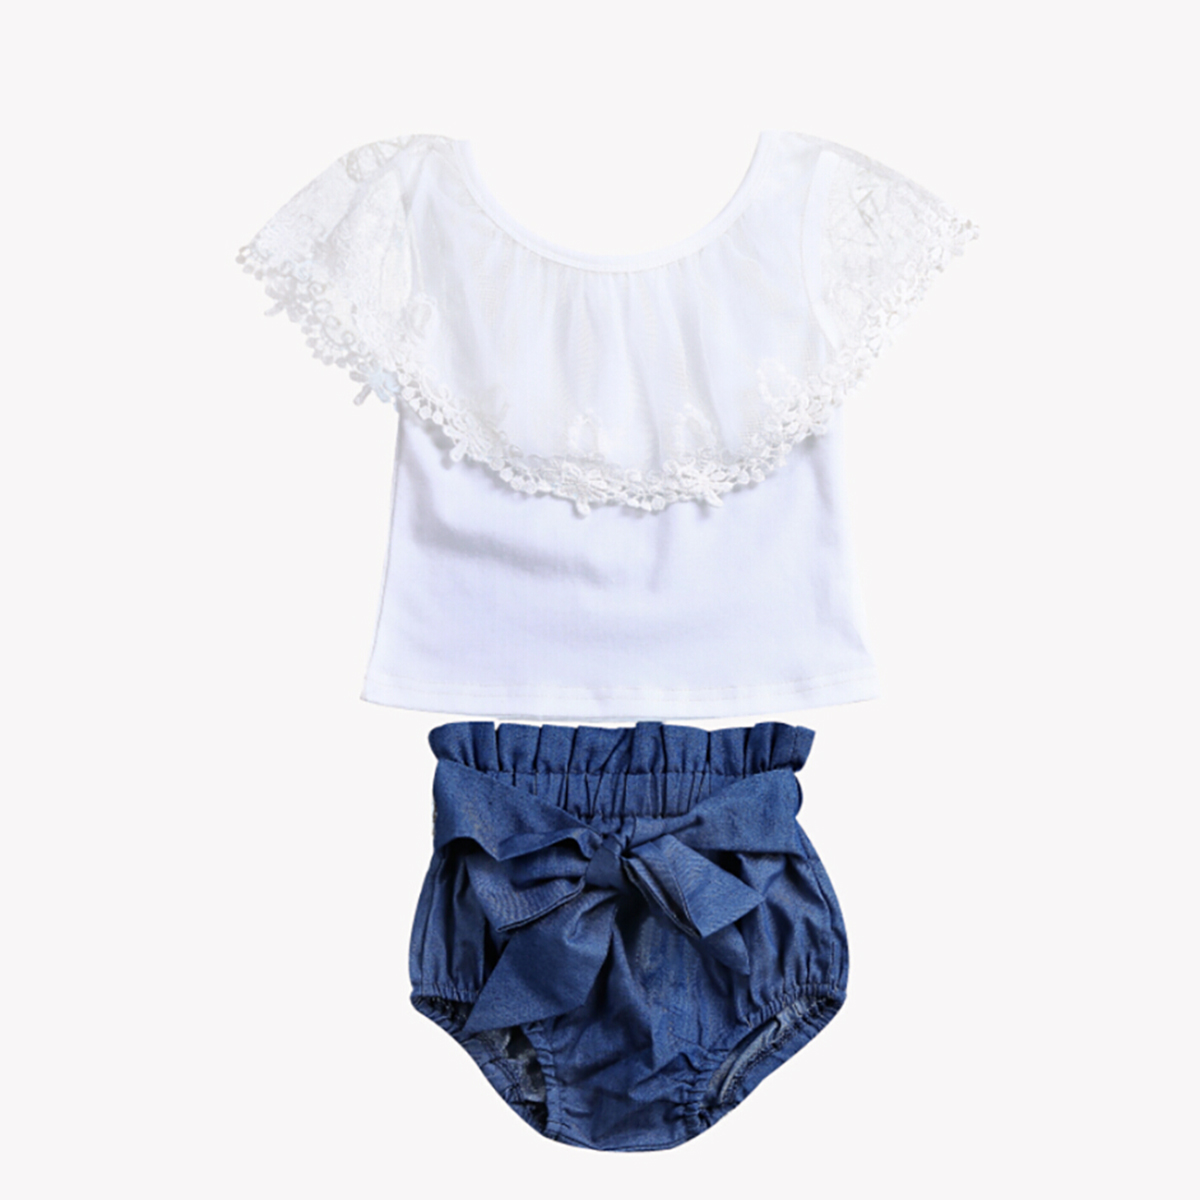 2017 Cute Toddler Kids Clothes Summer White Lace T-shirt Tops Off shoulder+Denim Shorts Bloomers 2PCS Outfits Children Clothing 2017 new fashion kids clothes off shoulder camo crop tops hole jean denim pant 2pcs outfit summer suit children clothing set